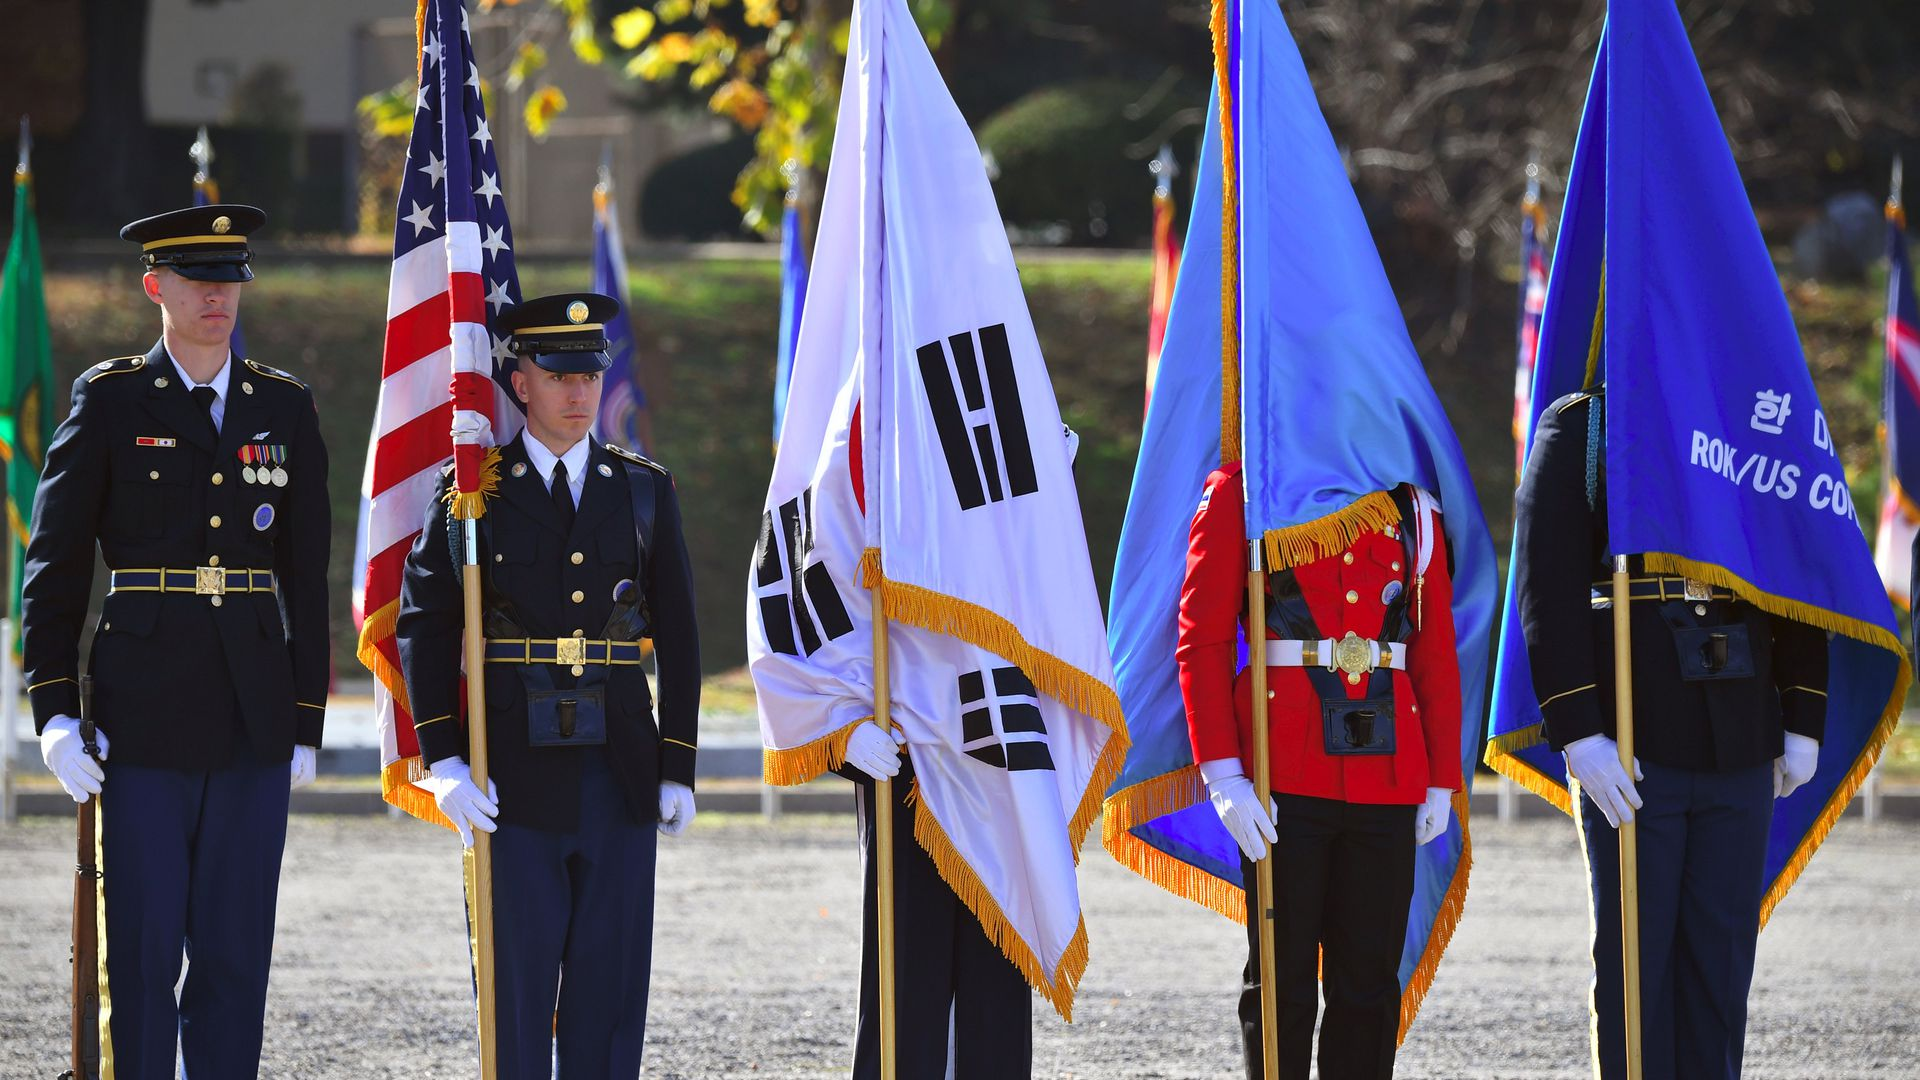 United Nations Command honour guards hold flags during a repatriation ceremony for the remains of an unidentified Korean War UN forces soldier at a US Army base in Seoul on November 20, 2018.